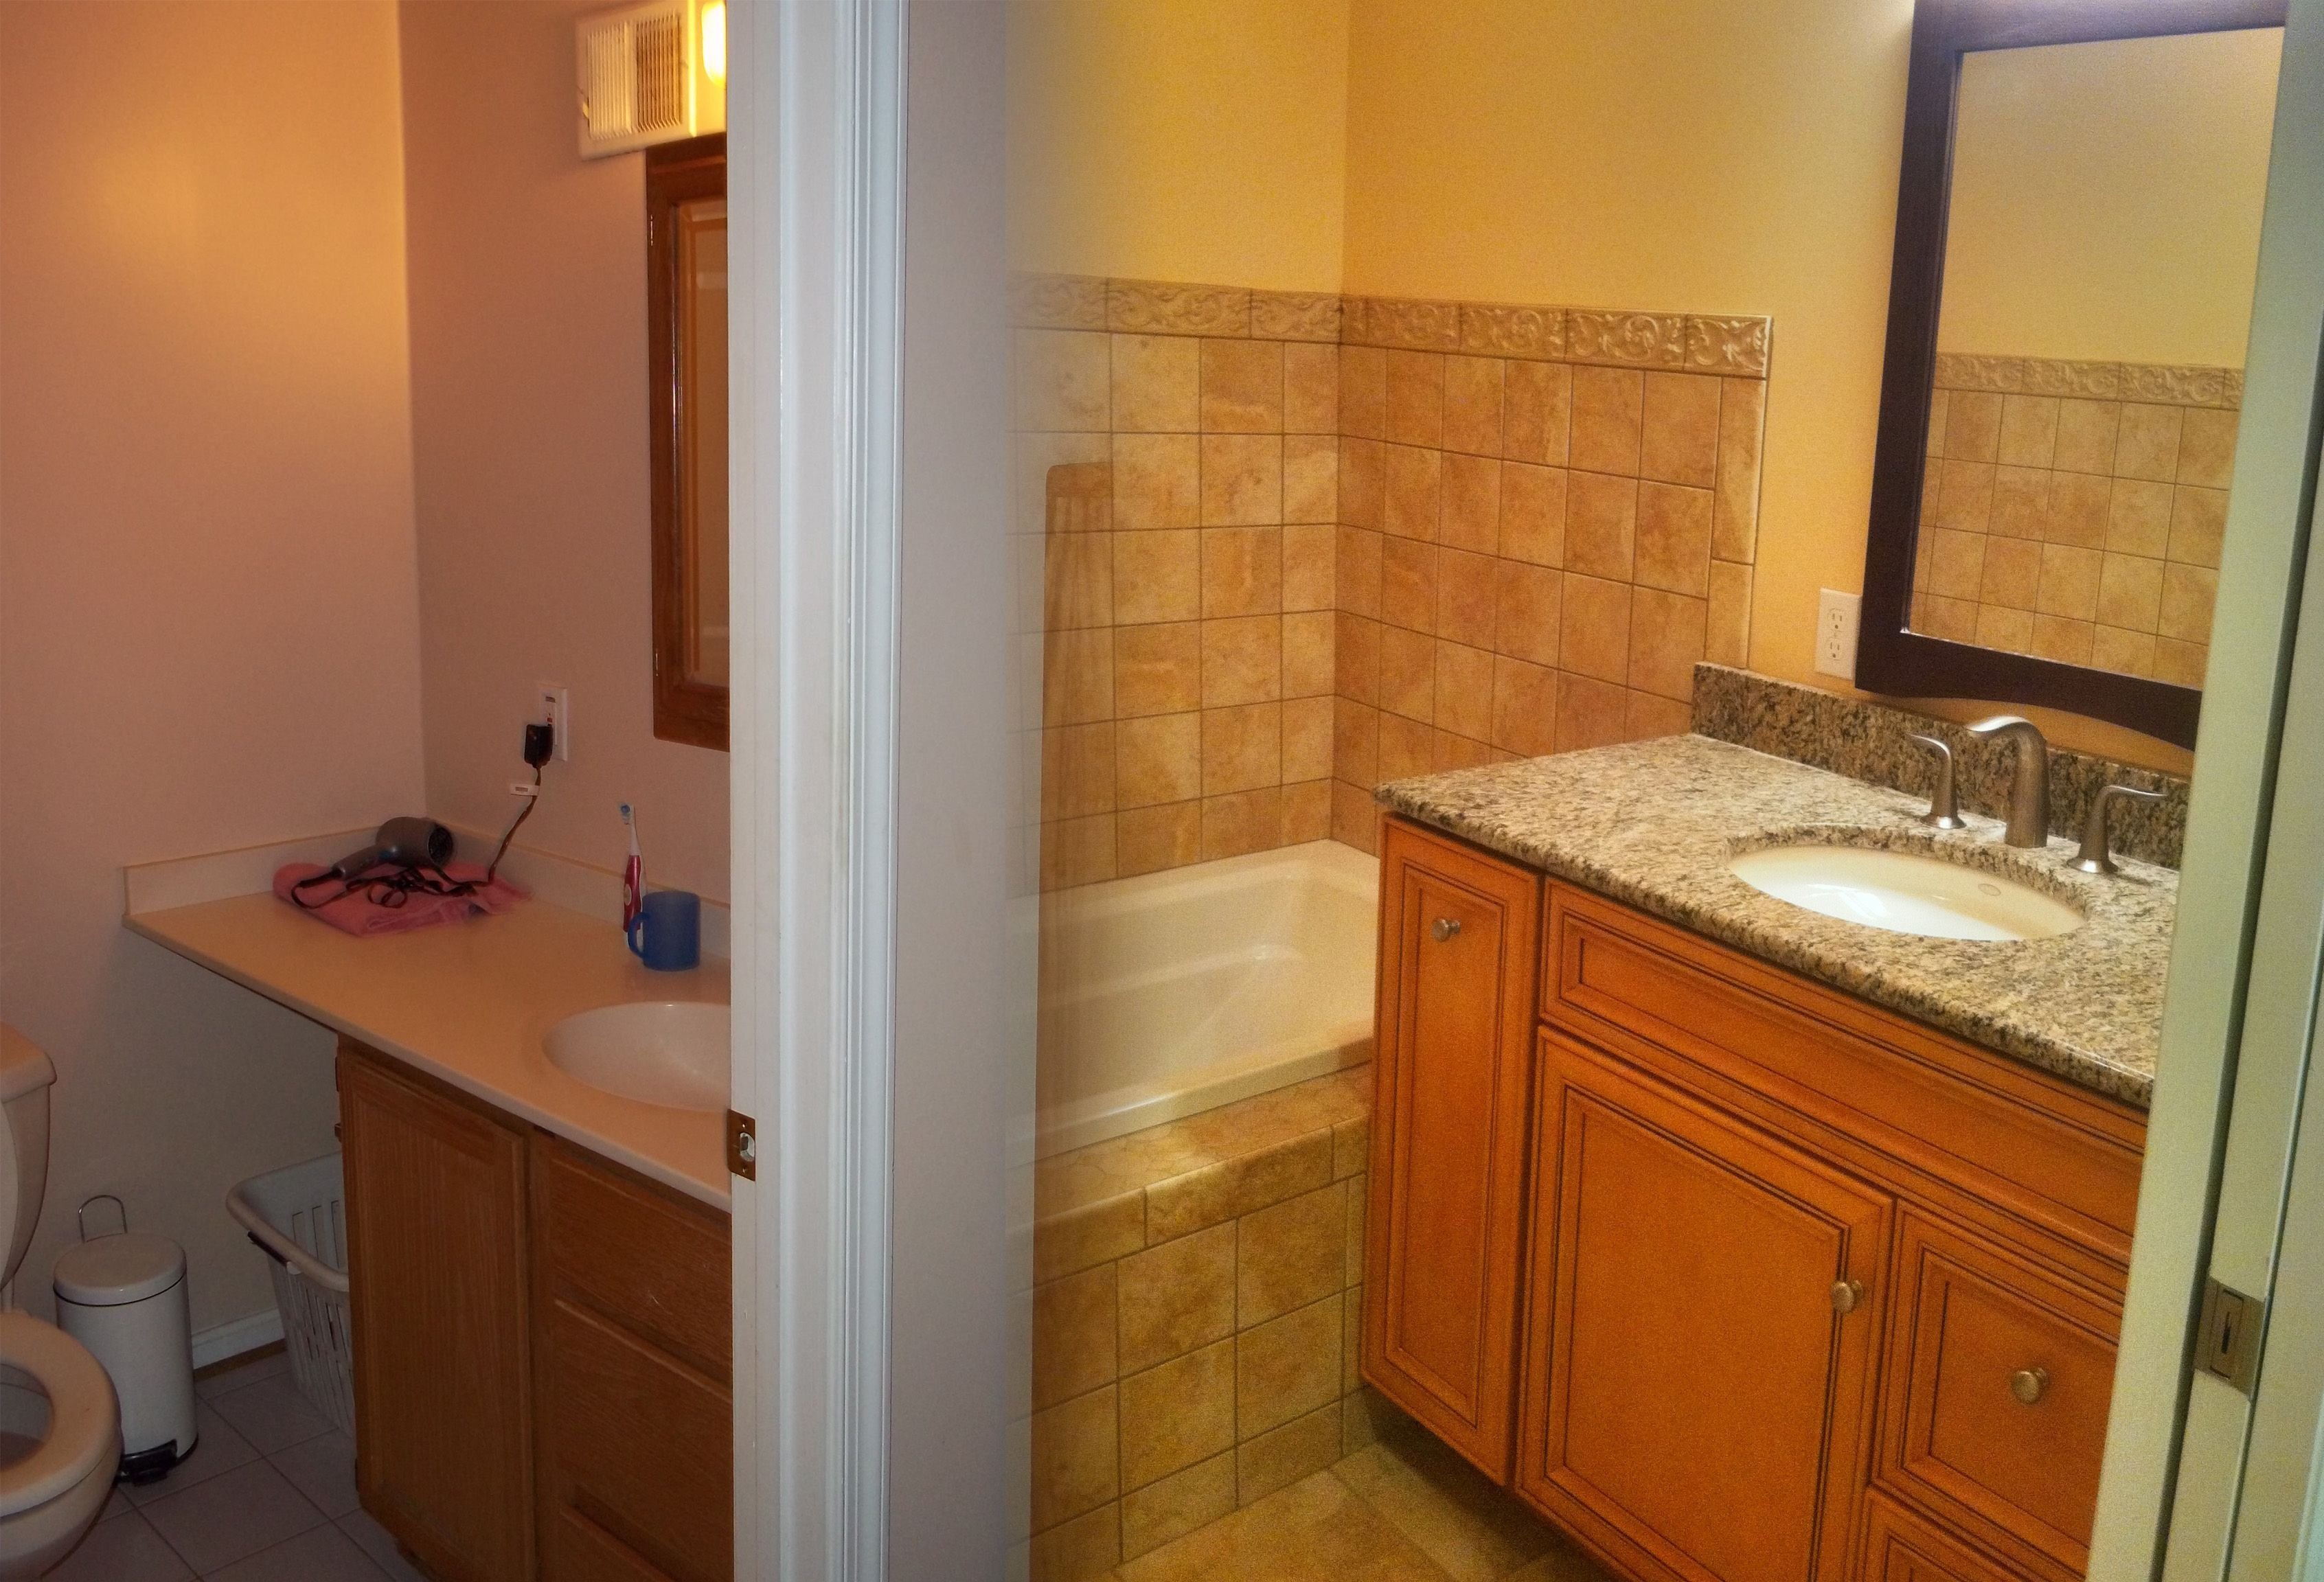 Bathroom Remodel Pics Before After 1960s bathroom renovation before and after |  , & bathroom